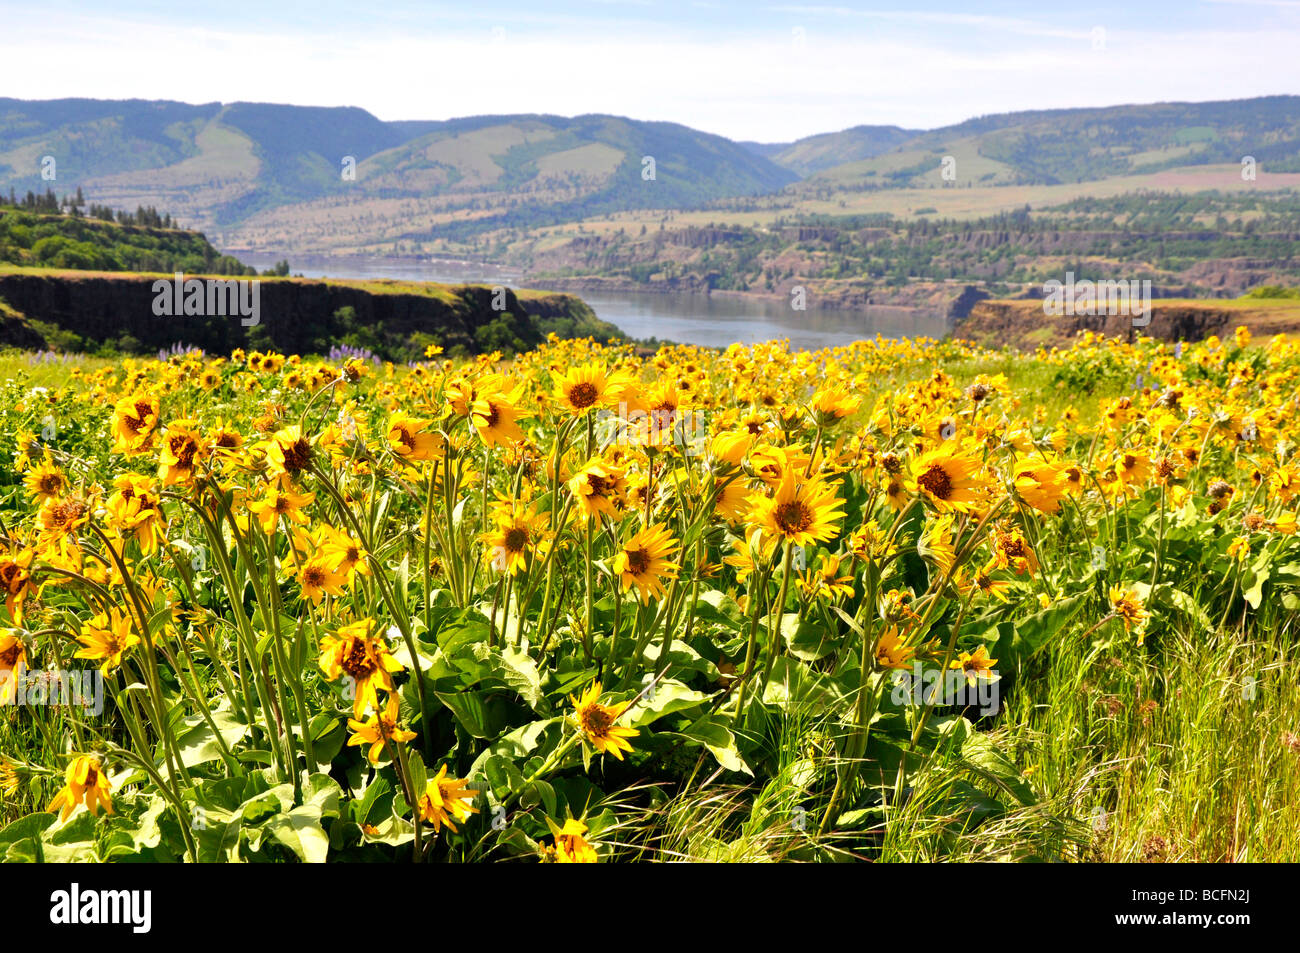 Wild flowers in the Columbia River Gorge, Tom McCall Nature Reserve, Oregon, USA Stock Photo